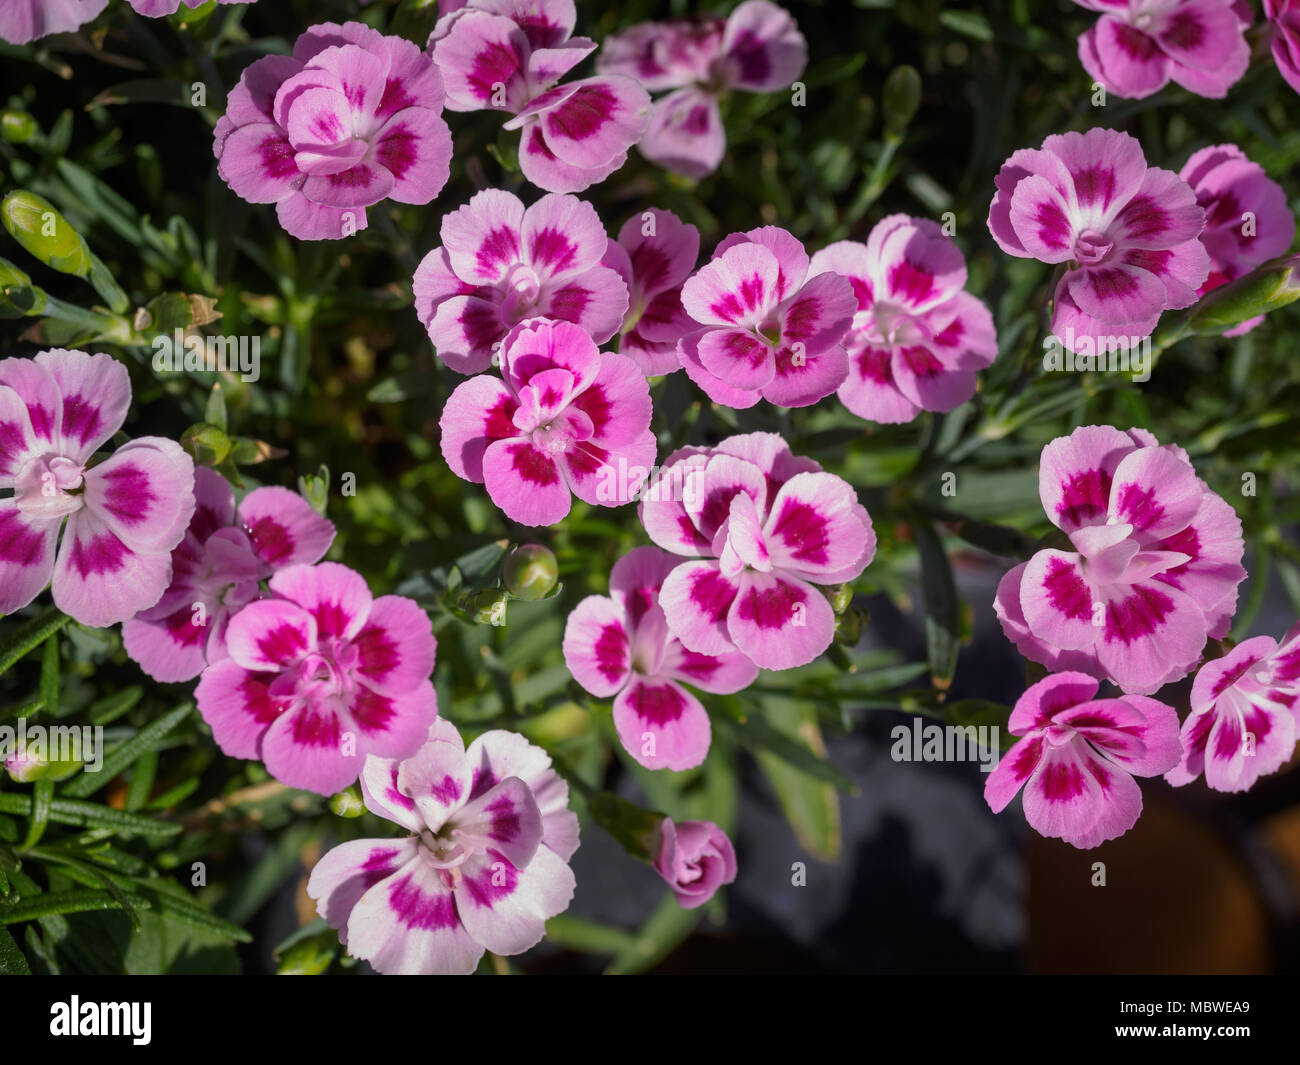 Pink Pansy Flowers With Blur Background In The Garden Stock Photo